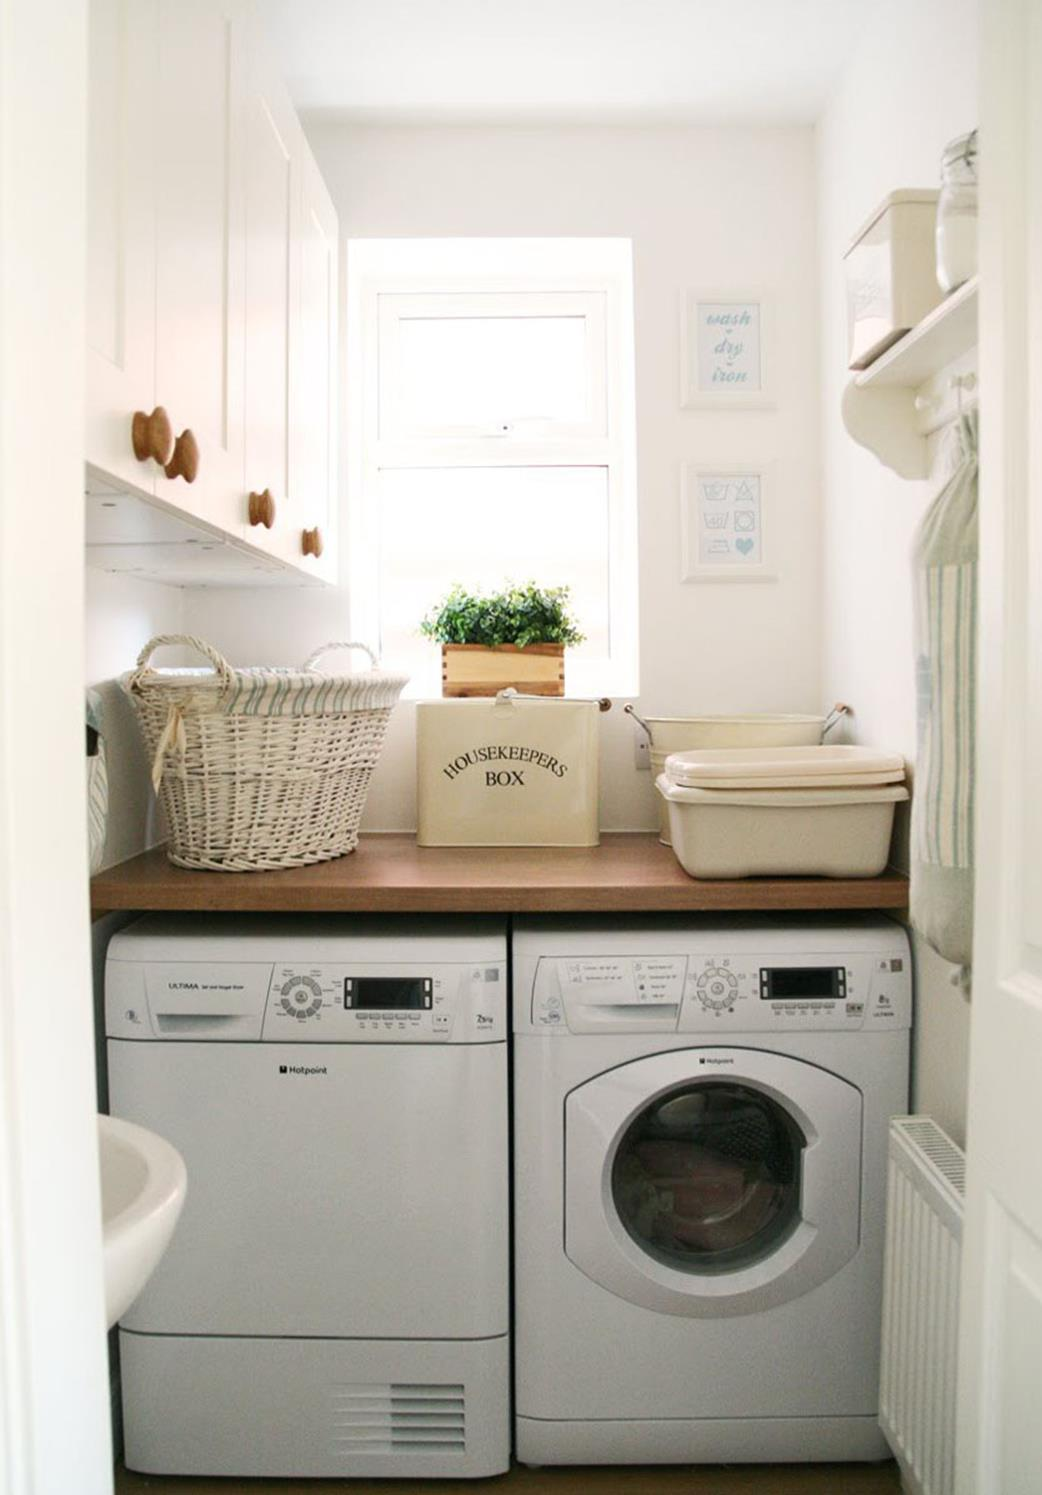 Laundry Room Accessories Decorations Ideas 23